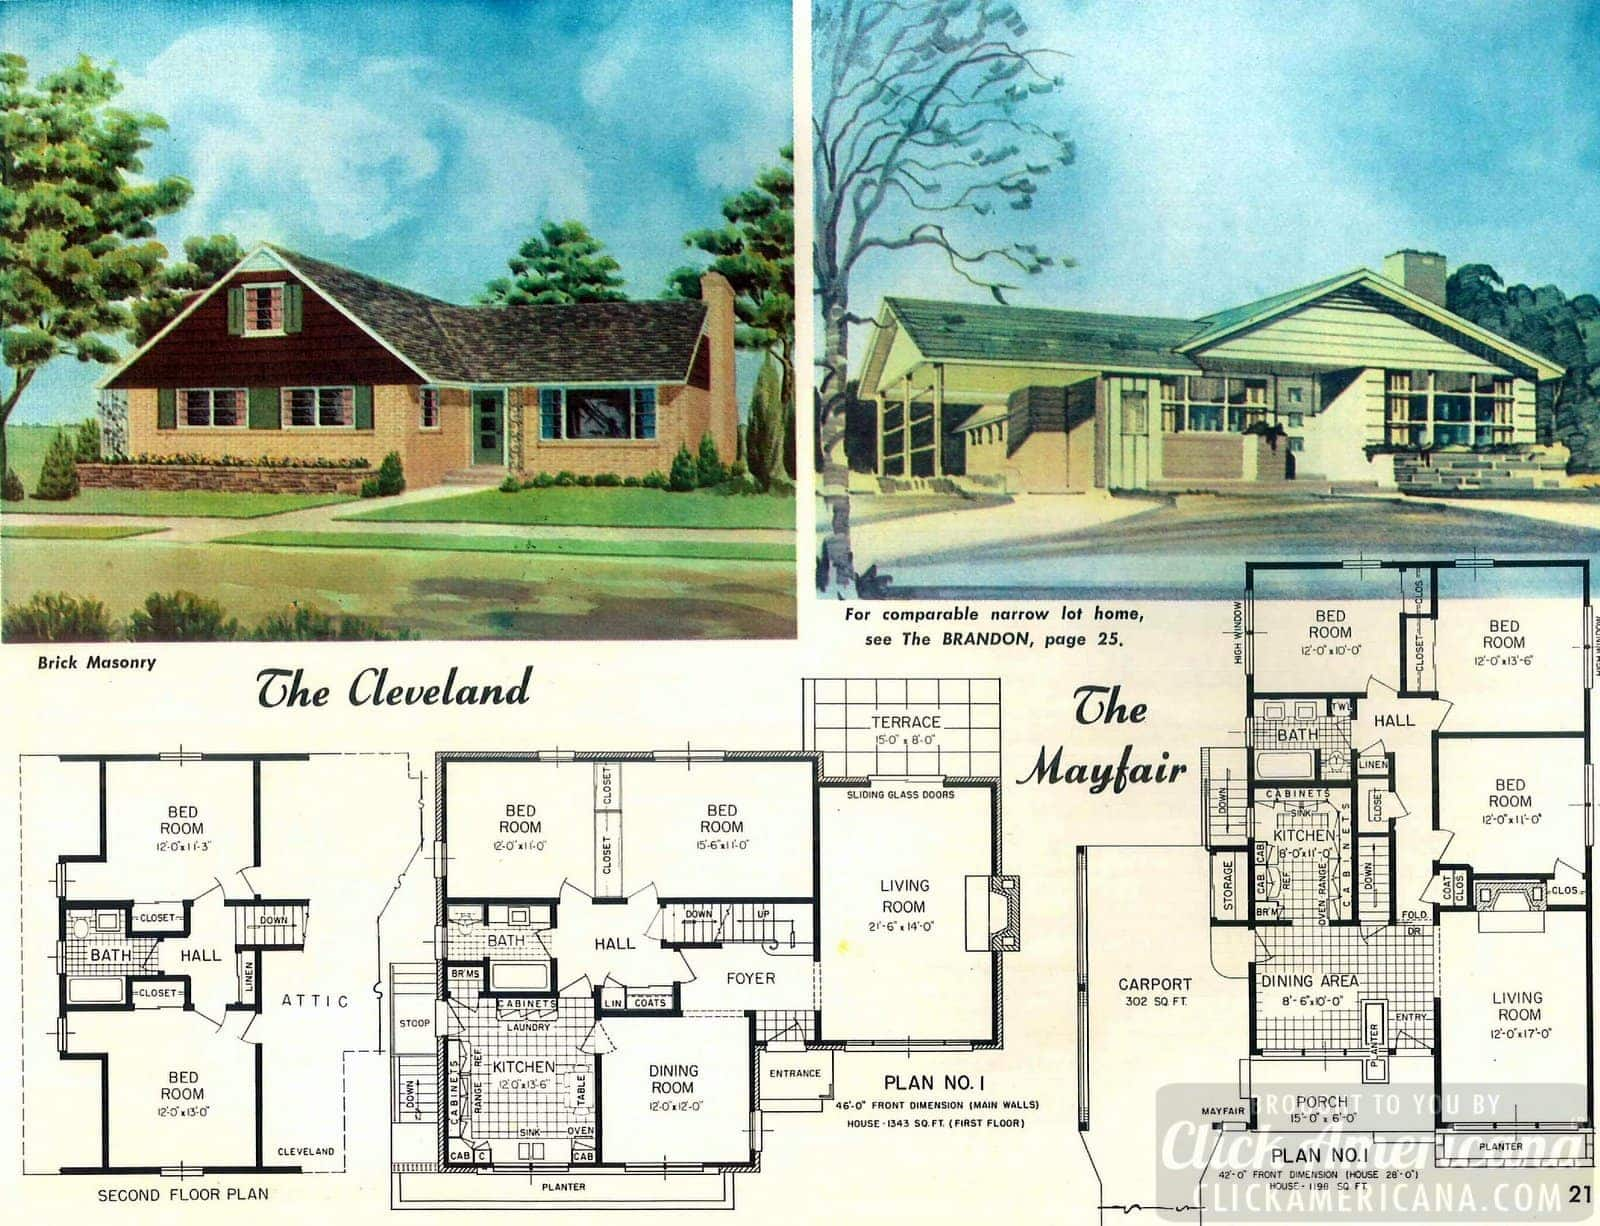 Home design plans from 1958: The Cleveland & Mayfair